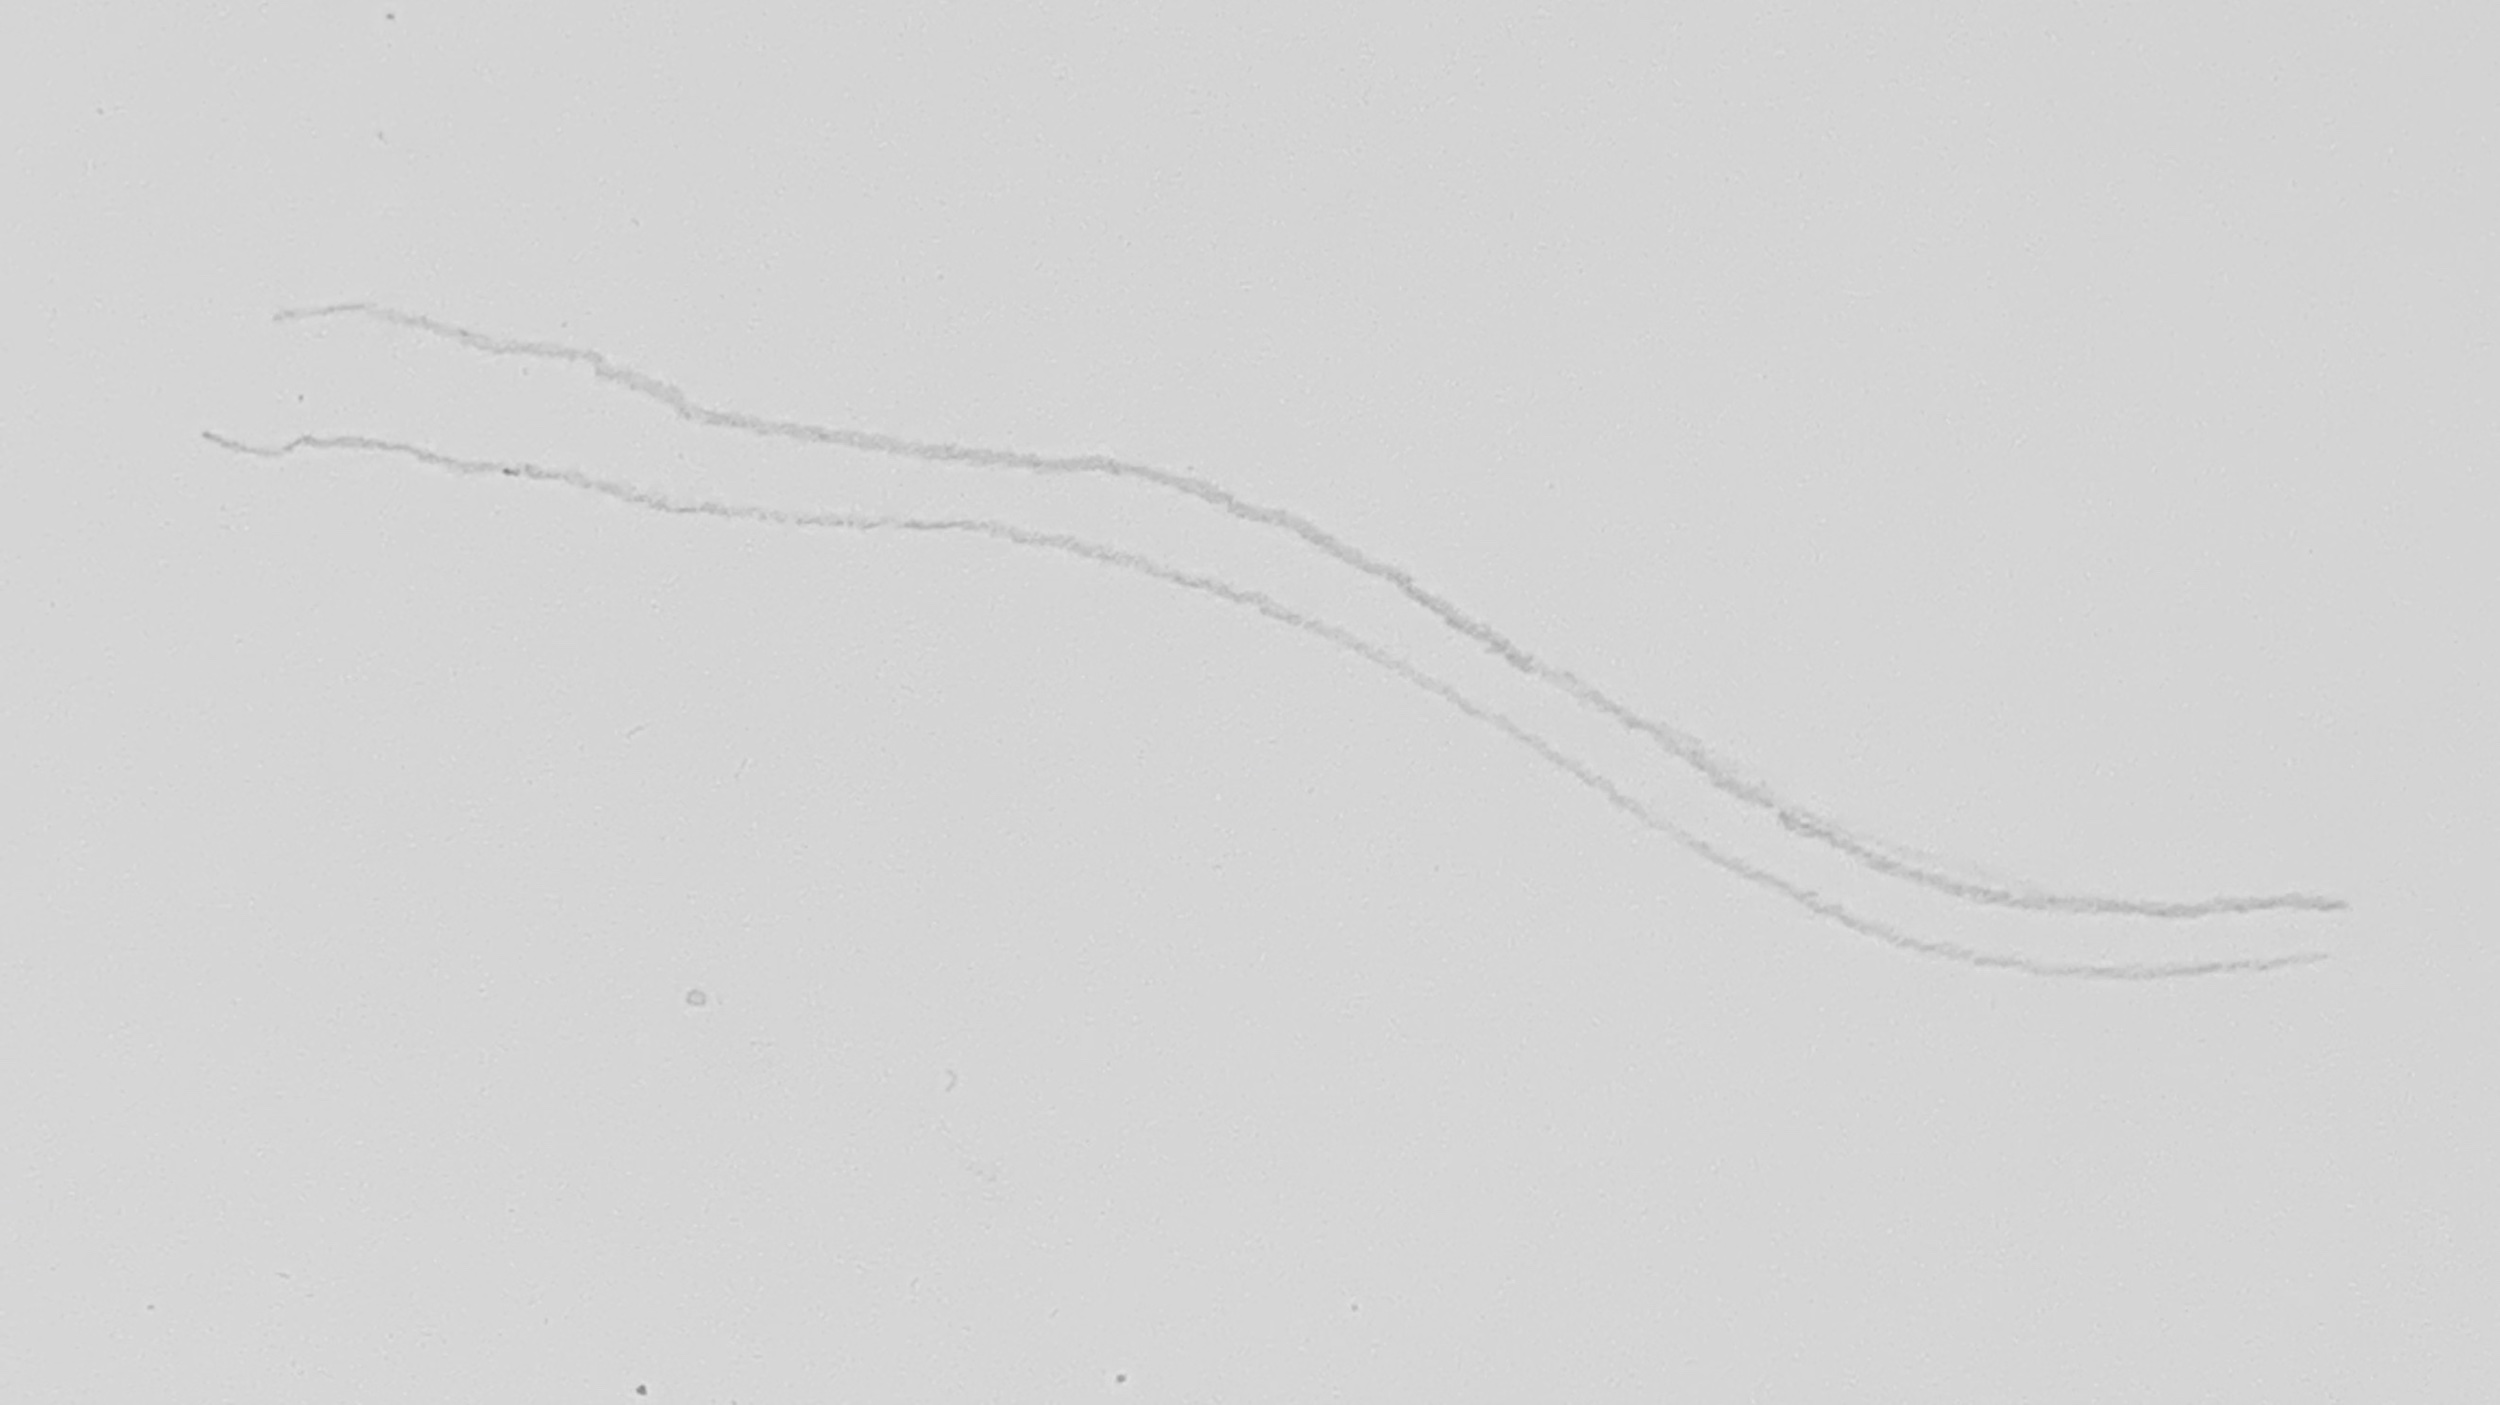 1. Draw the basic shape of the branch you wish to illustrate. Feel free to copy this one